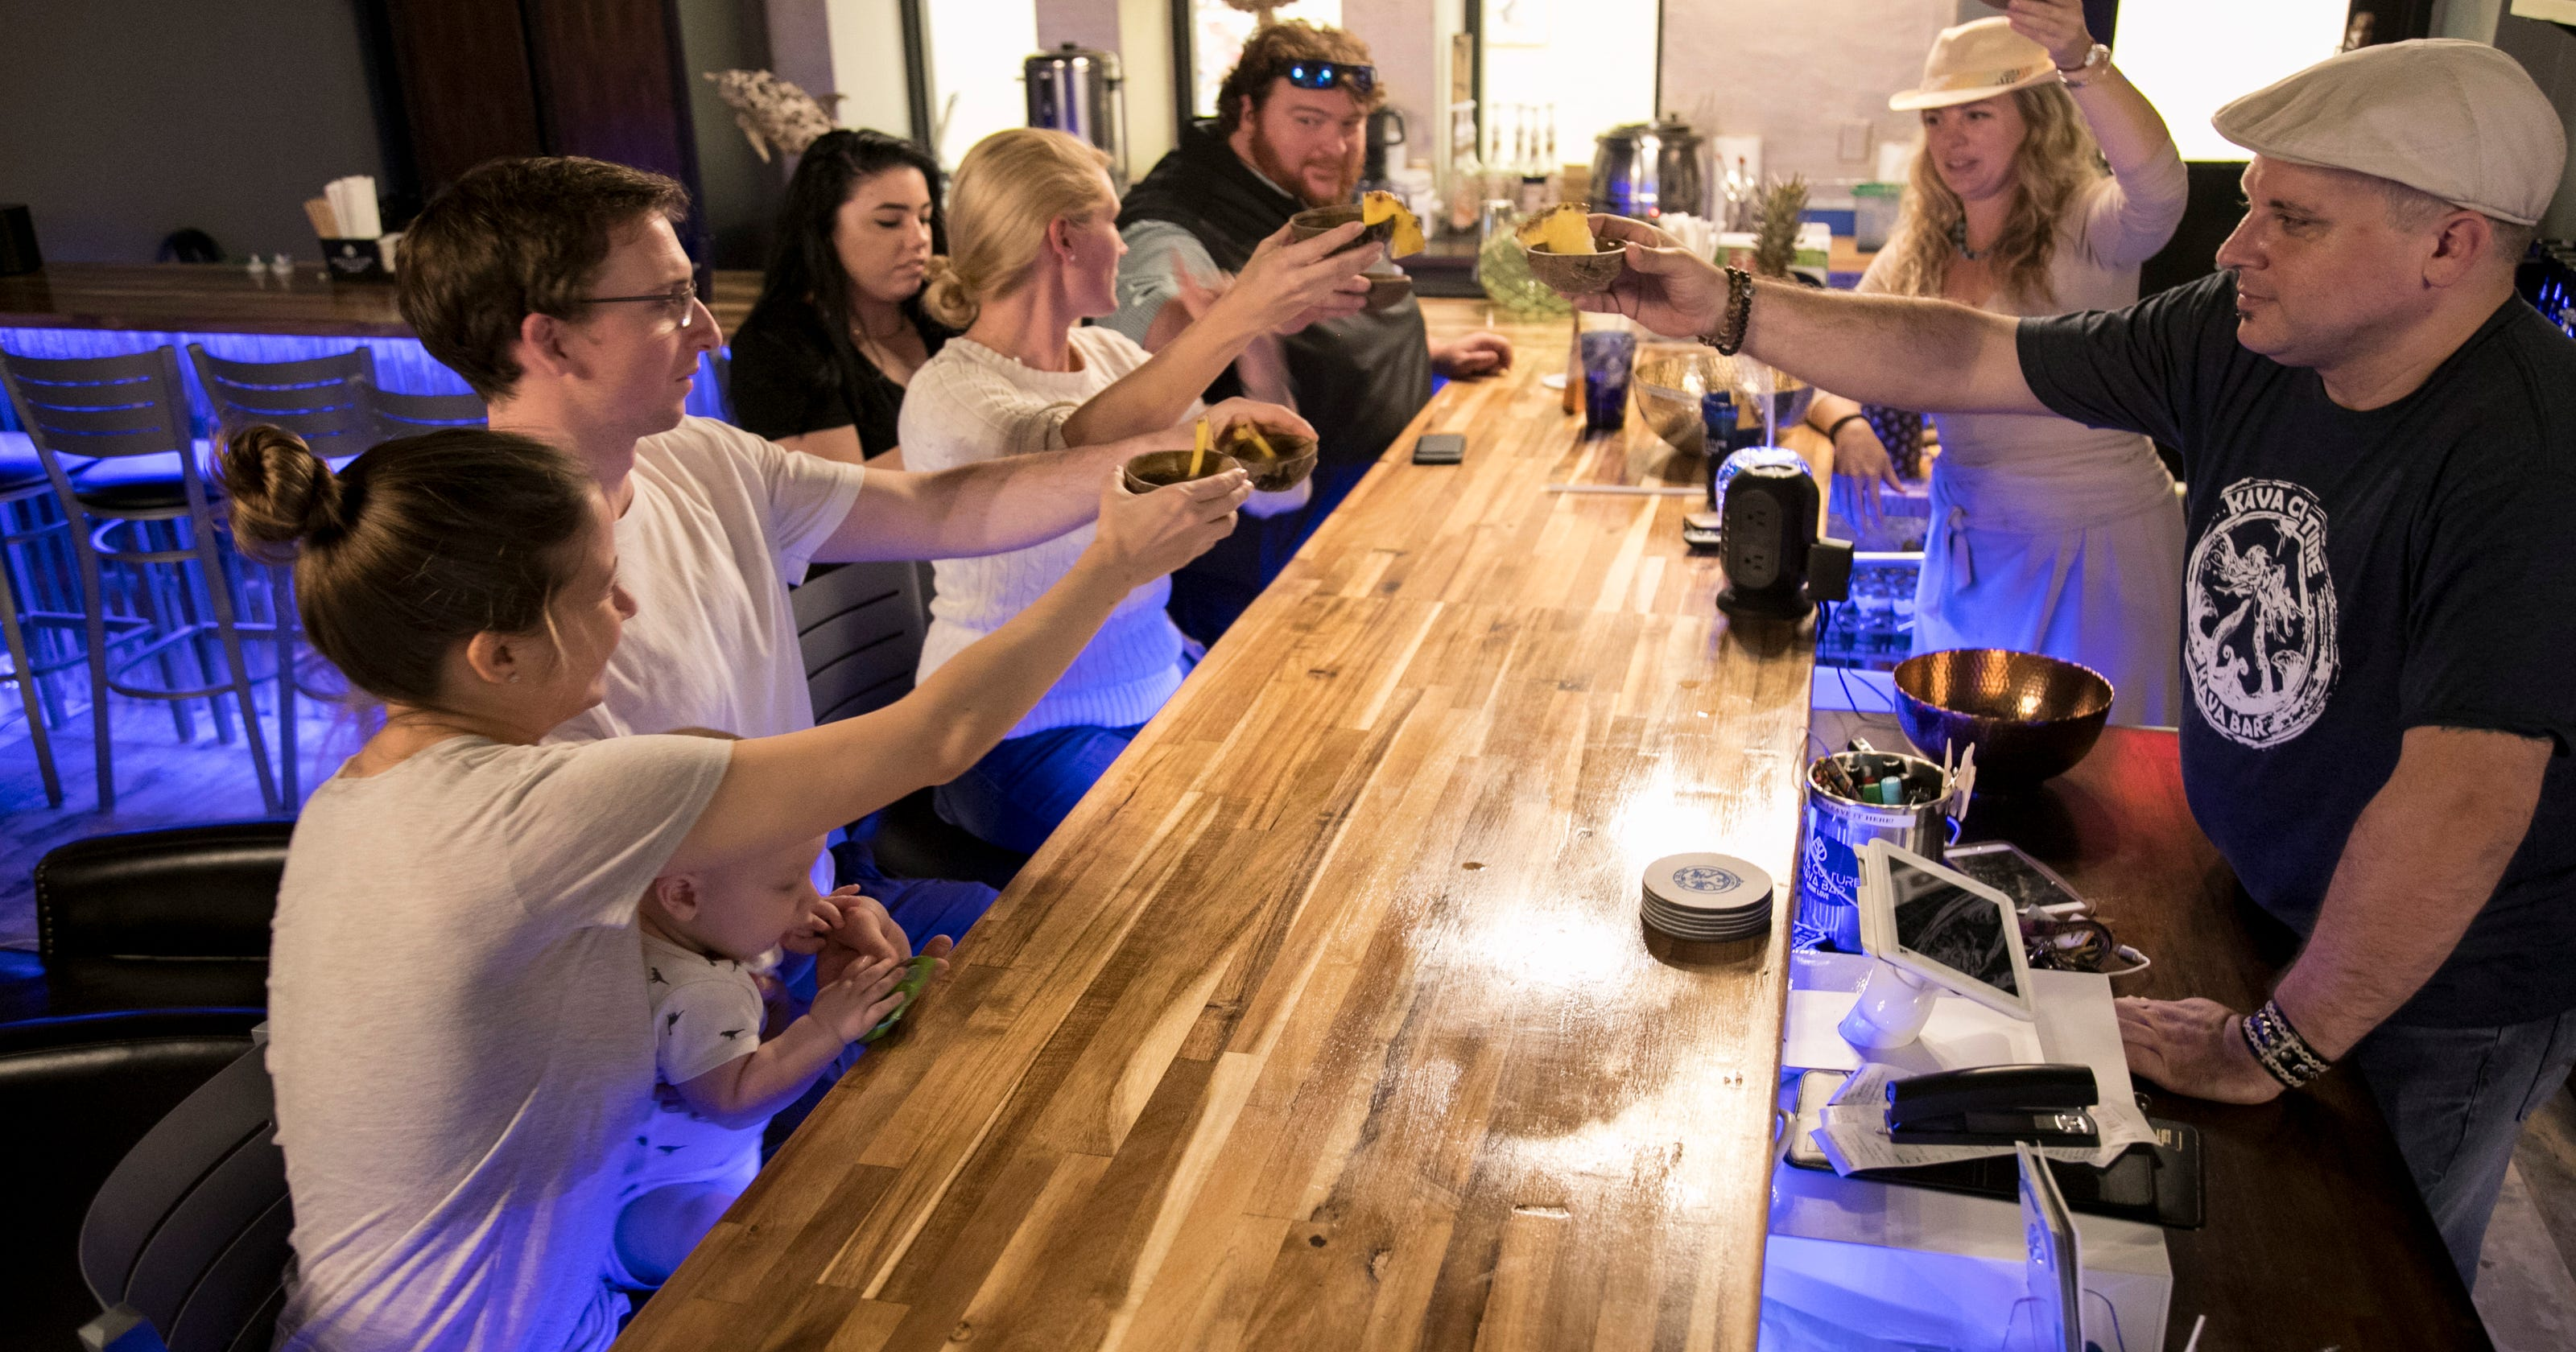 Kava Culture brings kava and kratom bar to downtown Fort Myers